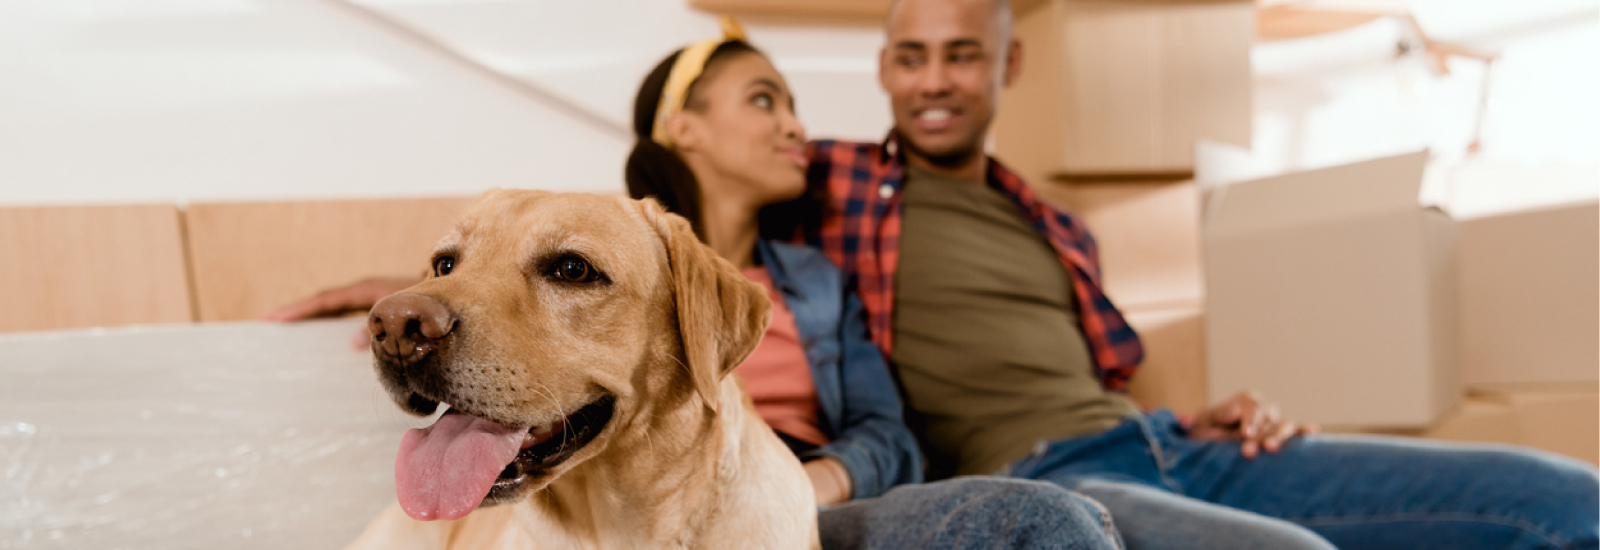 Tips For Moving With a Dog